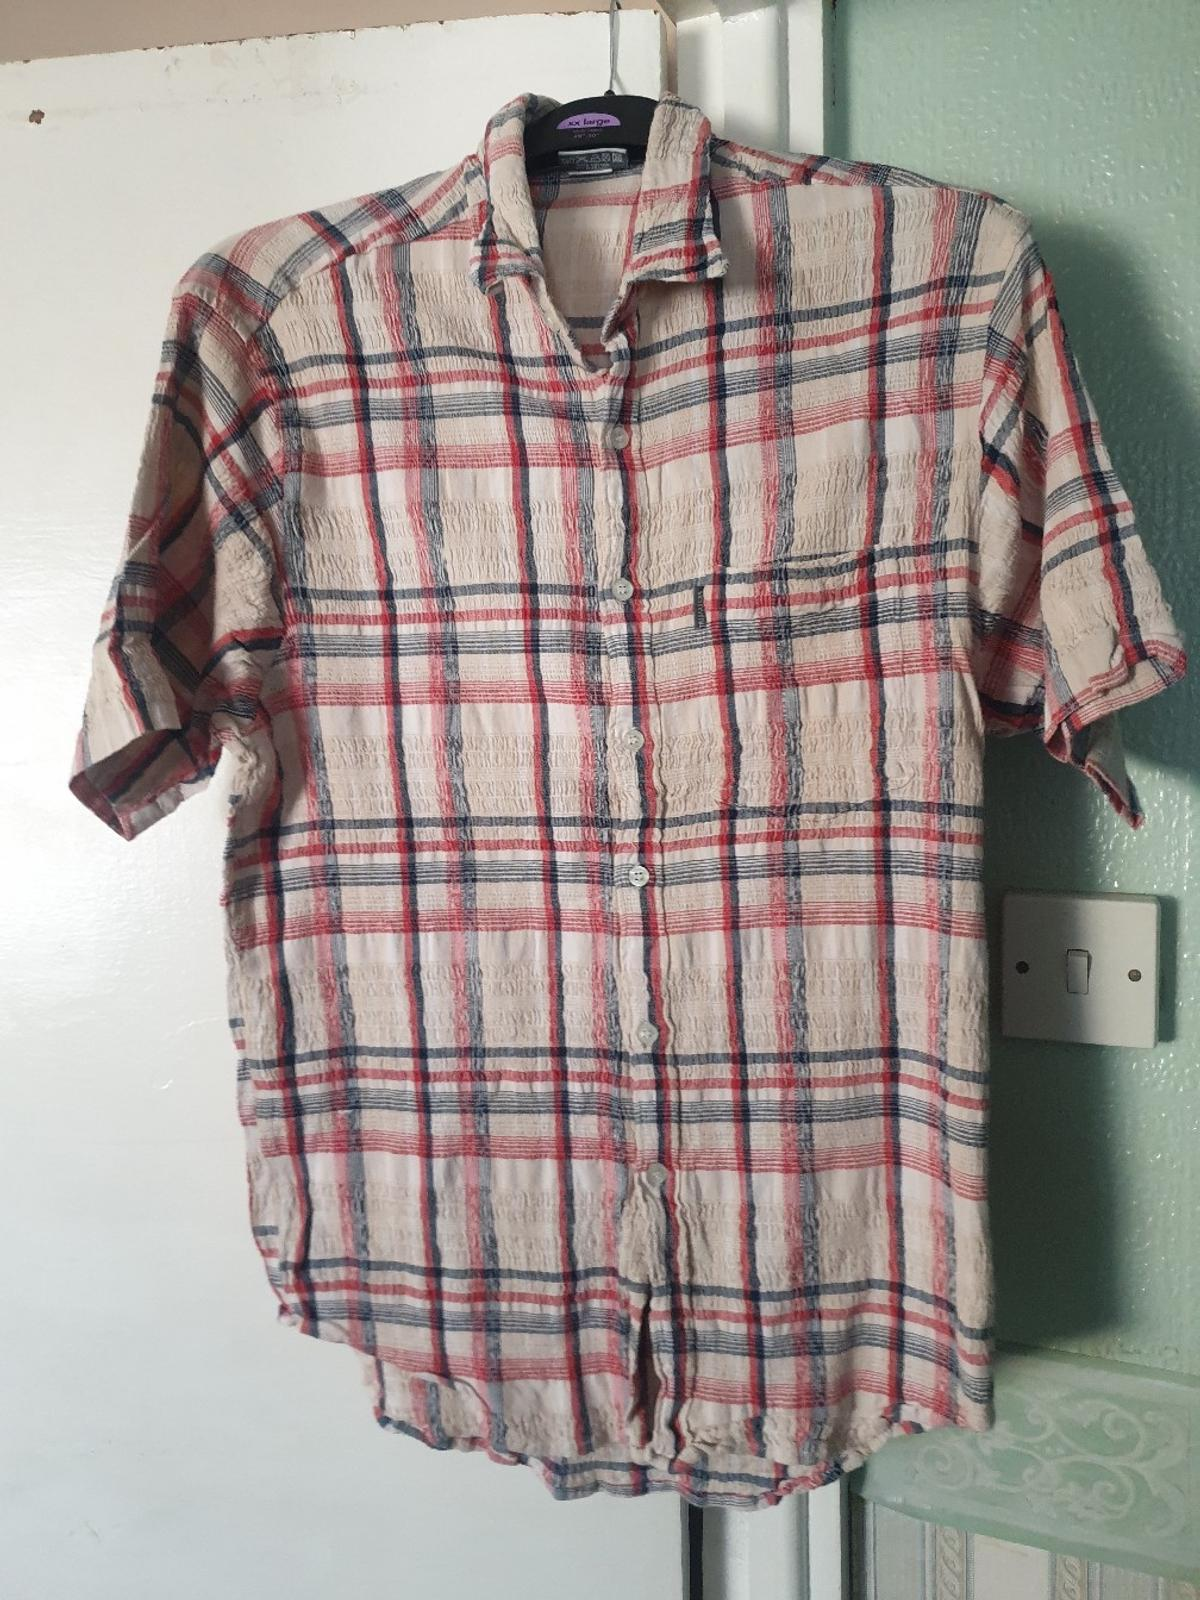 Trespass check shirt size Large stretchy crinkle fabric, really unusual  PLEASE NOTE.... I CAN ONLY GET TO THE POST OFFICE ON A SATURDAY MORNING TO DO ANY POSTING